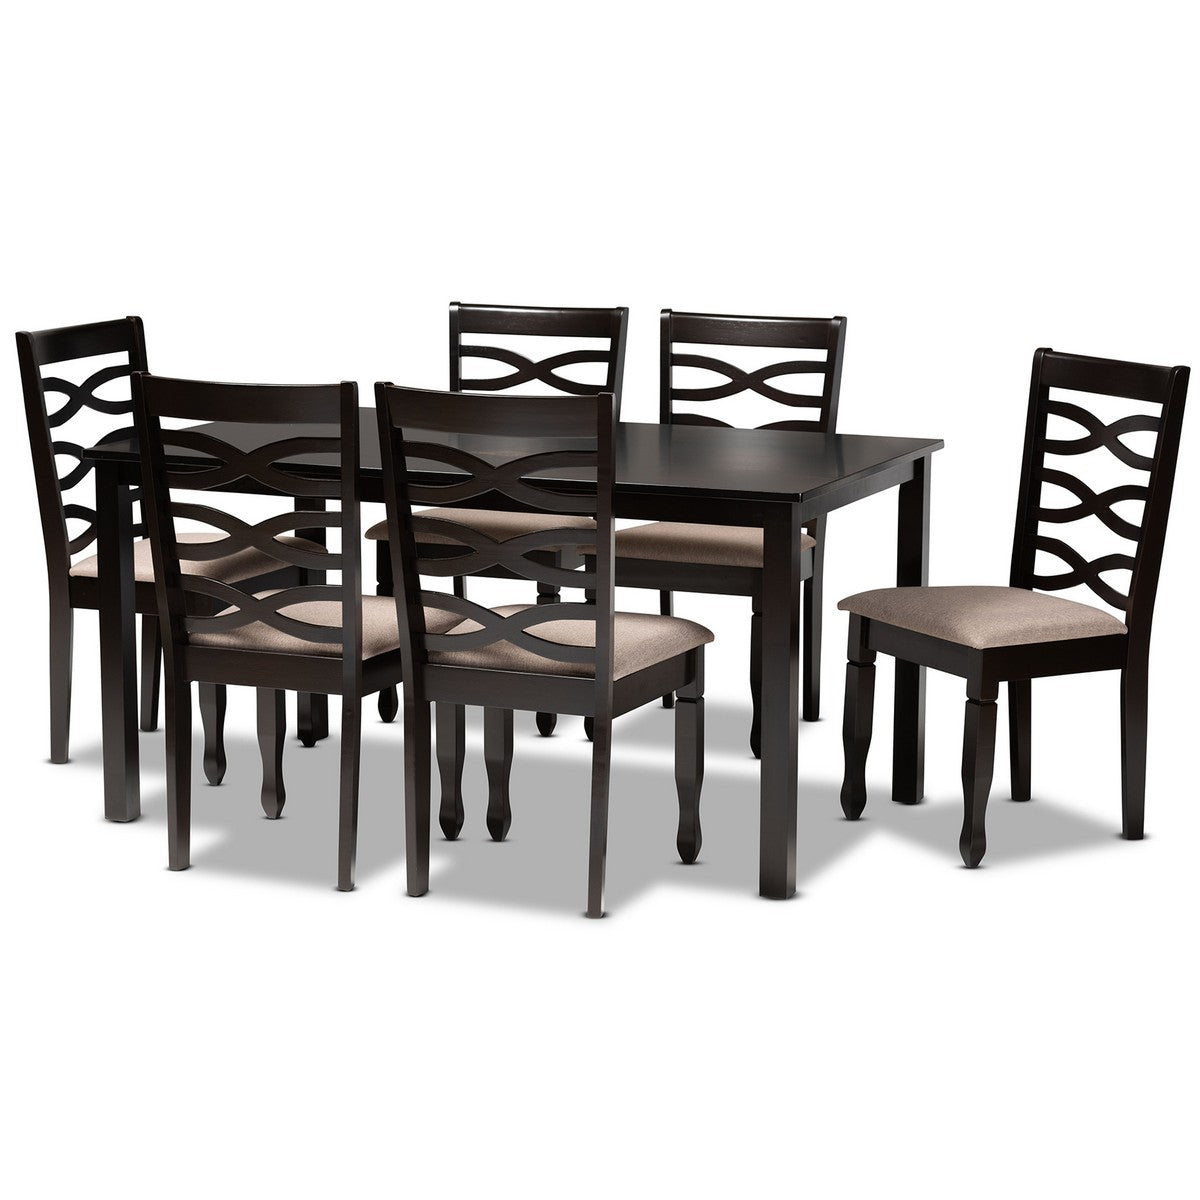 Baxton Studio Lanier Modern and Contemporary Sand Fabric Upholstered Dark Brown Finished Wood 7-Piece Dining Set Baxton Studio-Dining Sets-Minimal And Modern - 1